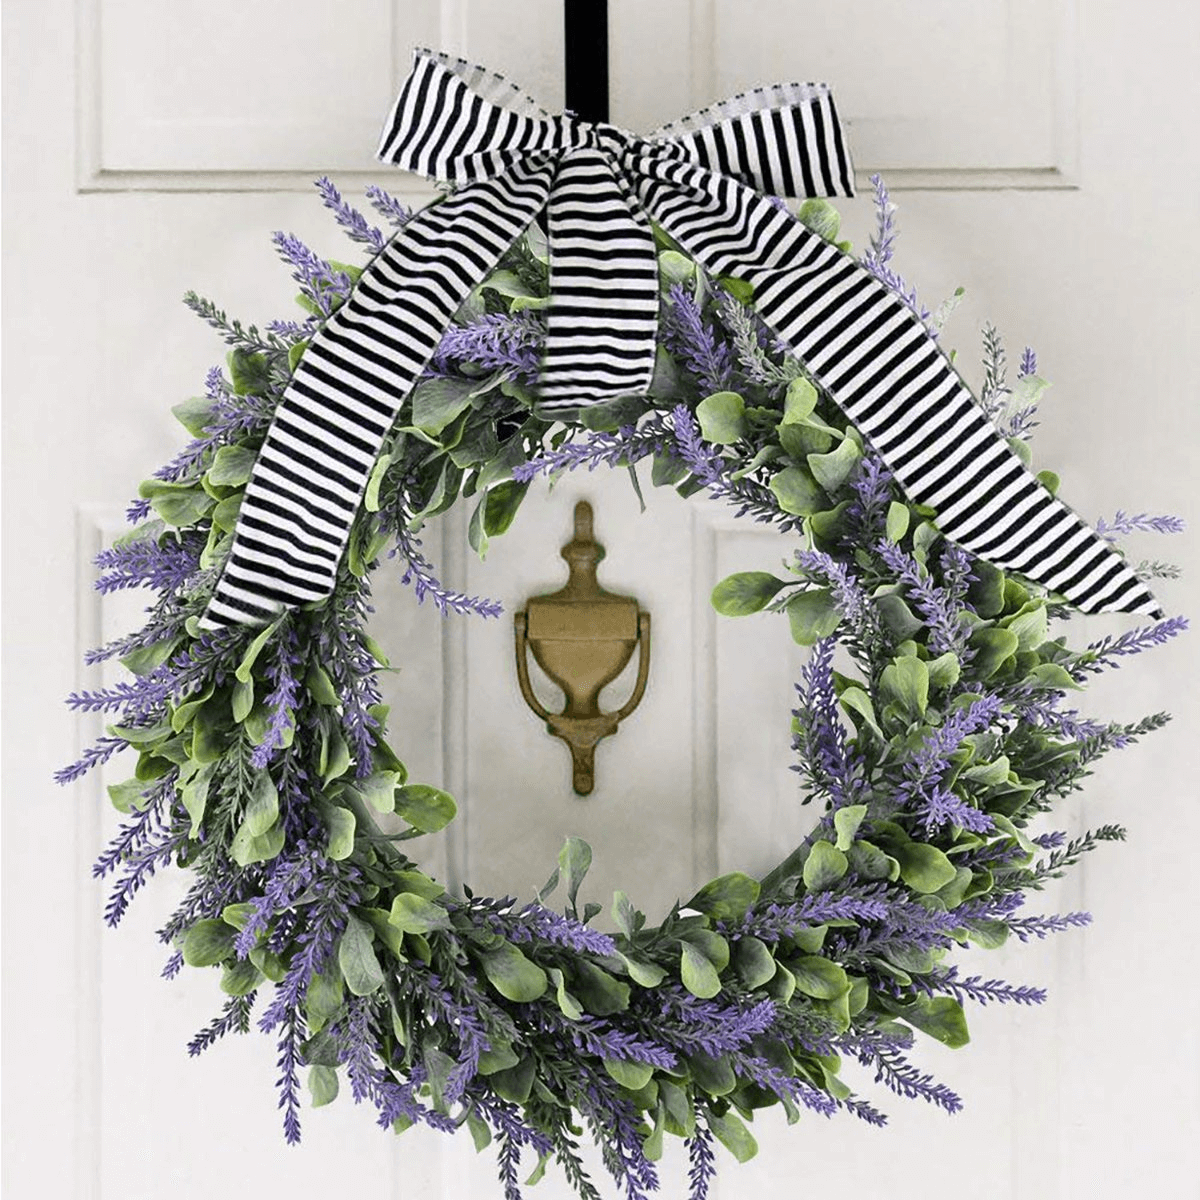 BEST PORCH DECORATION IDEAS FOR PARTY WITH WREATH IN FRONT DOOR